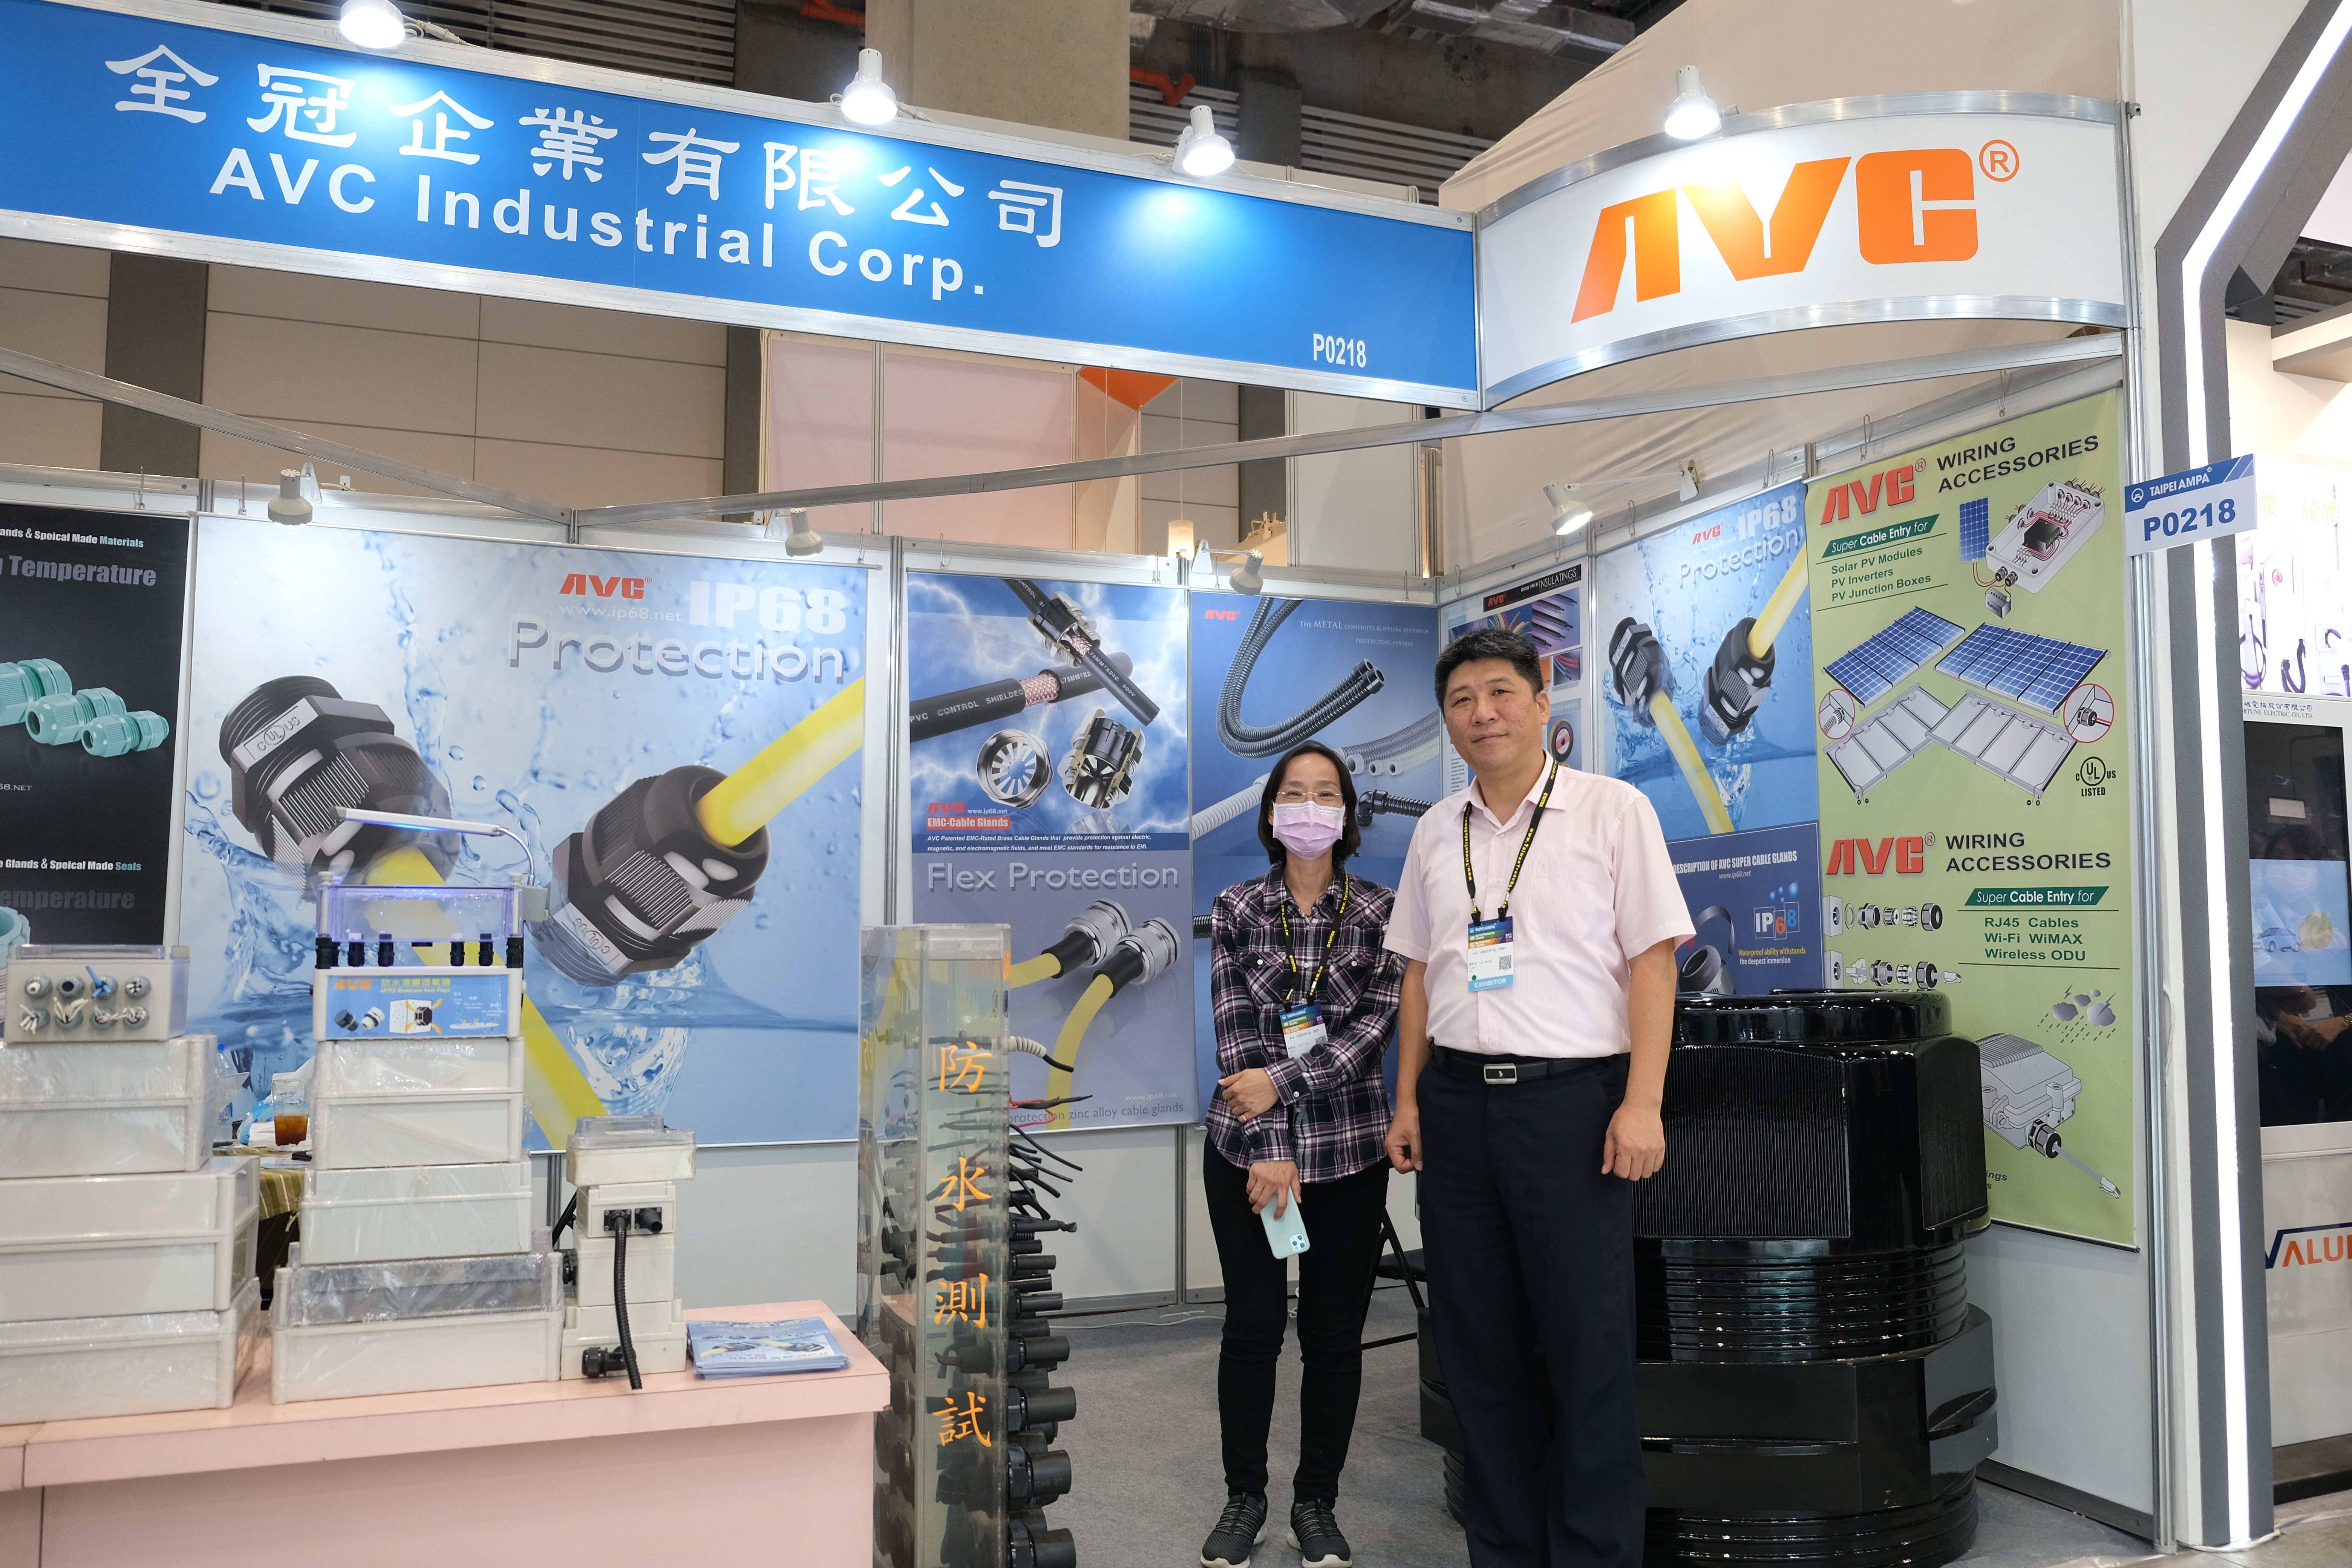 https://storage.googleapis.com/www.taiwantradeshow.com.tw/activity-photo/202010/T-69793153-name.jpg